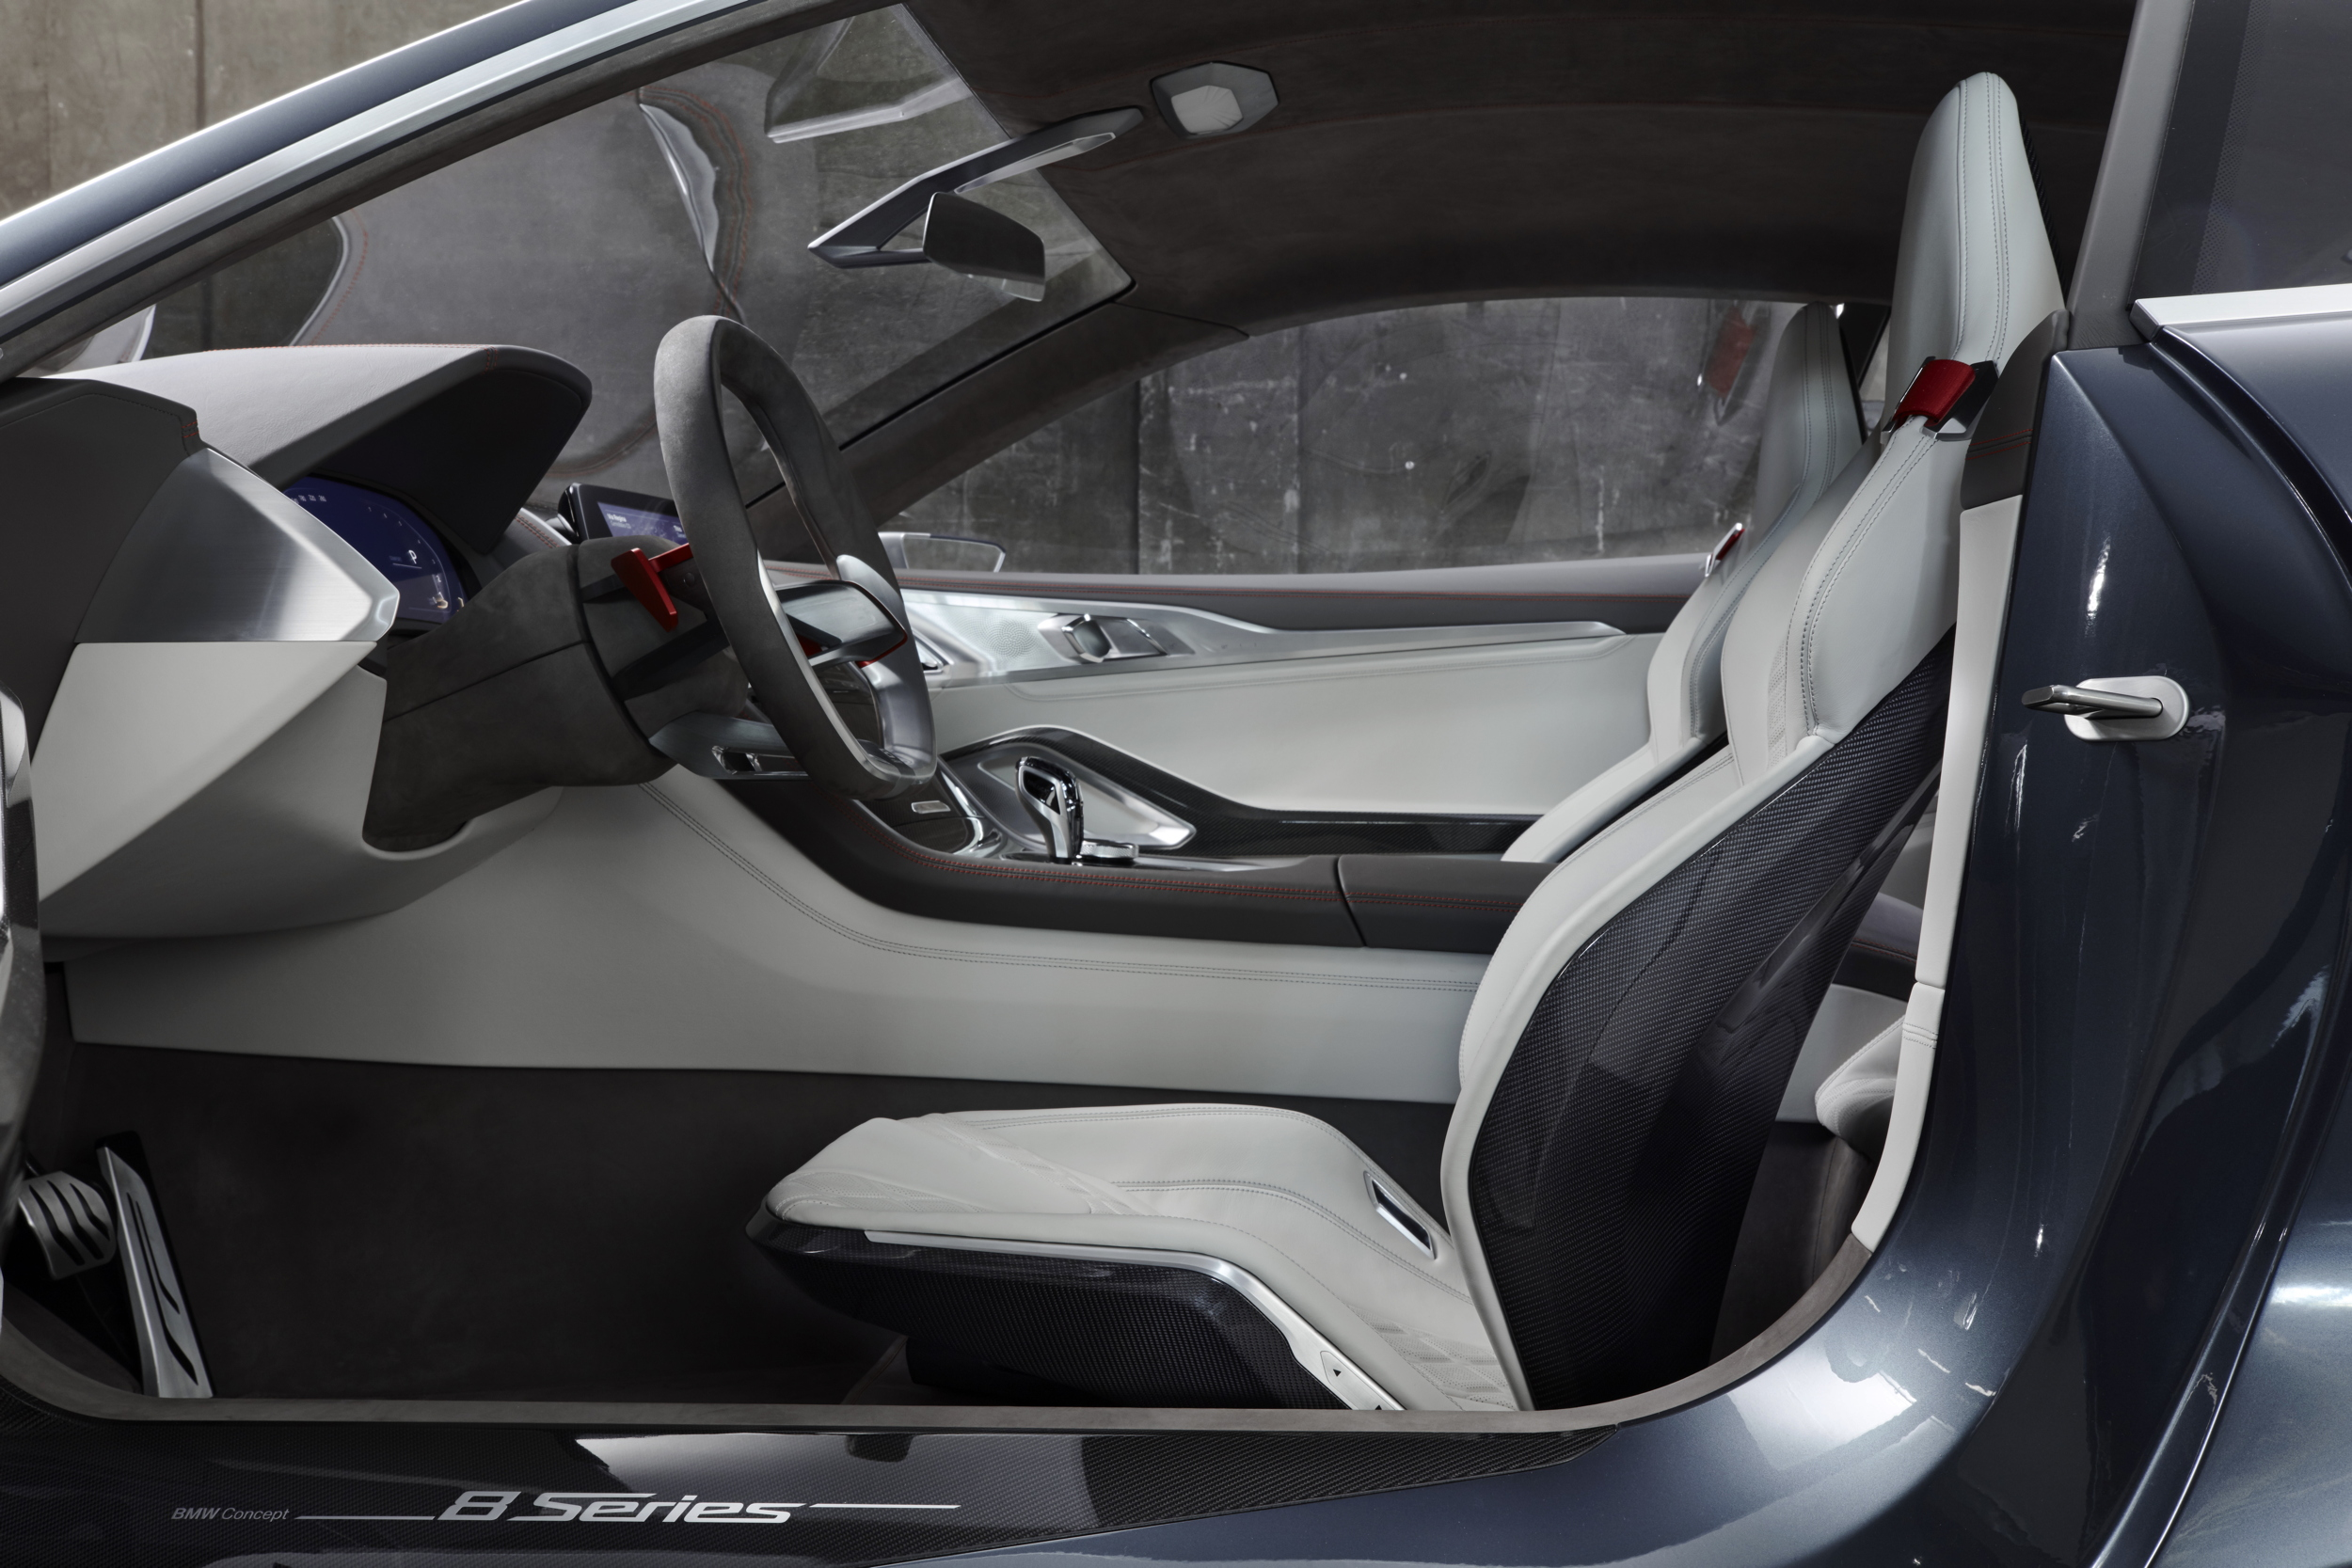 BMW Concept 8 Series interior side